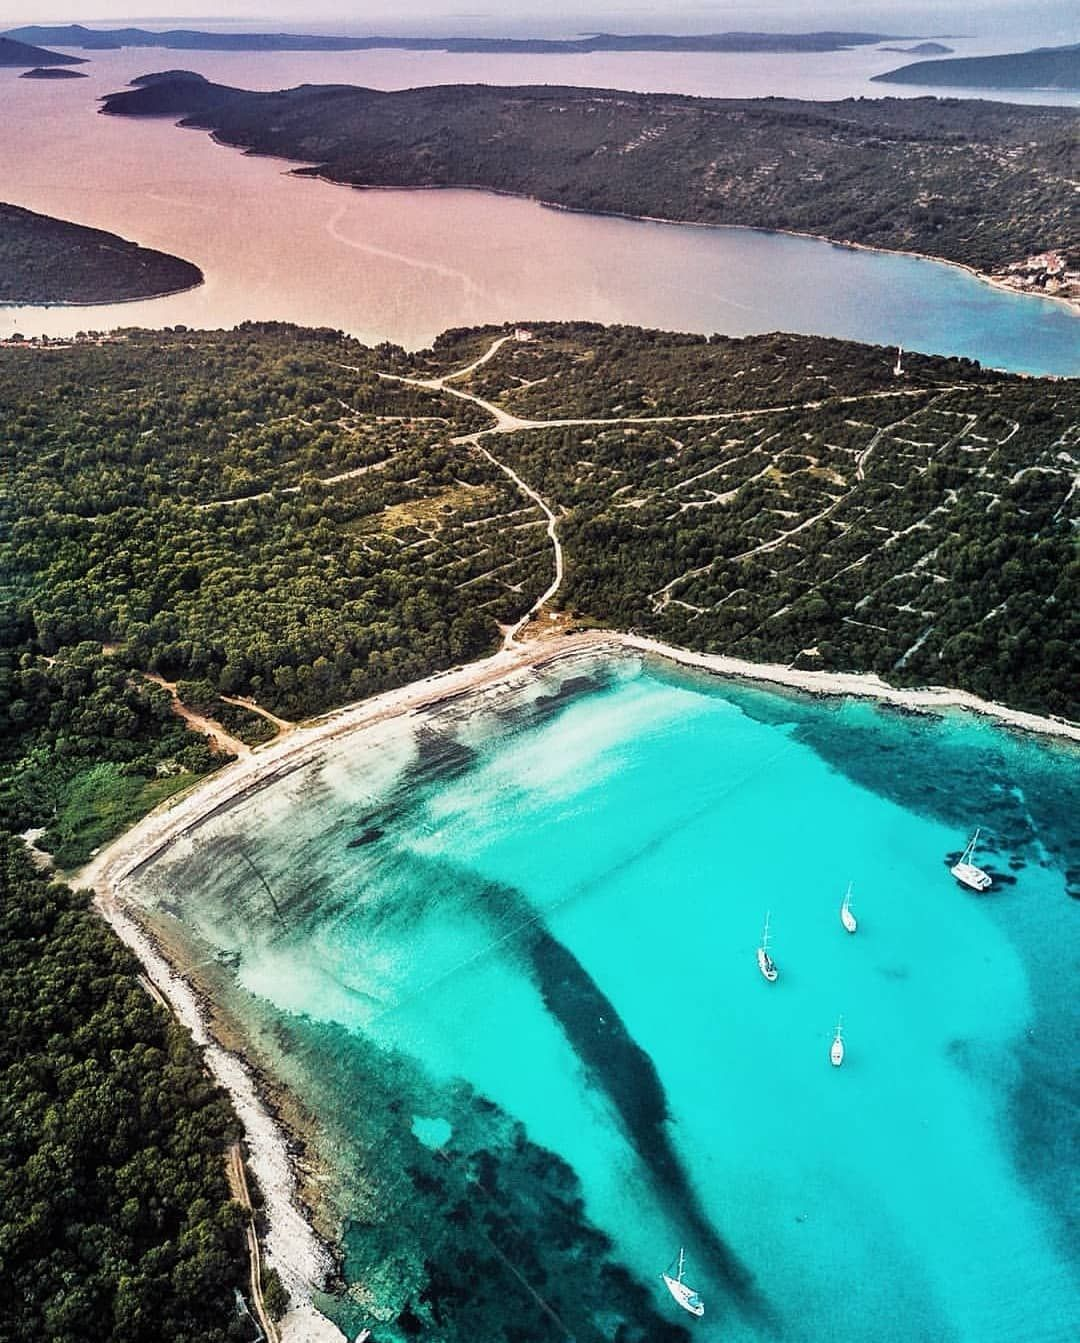 Zadar Region Tourist Board On Instagram Sakarun Beach Constantly Mentioned As One Of The Best Beaches In Croatia Croatia Vacation Tourist Tourist Board